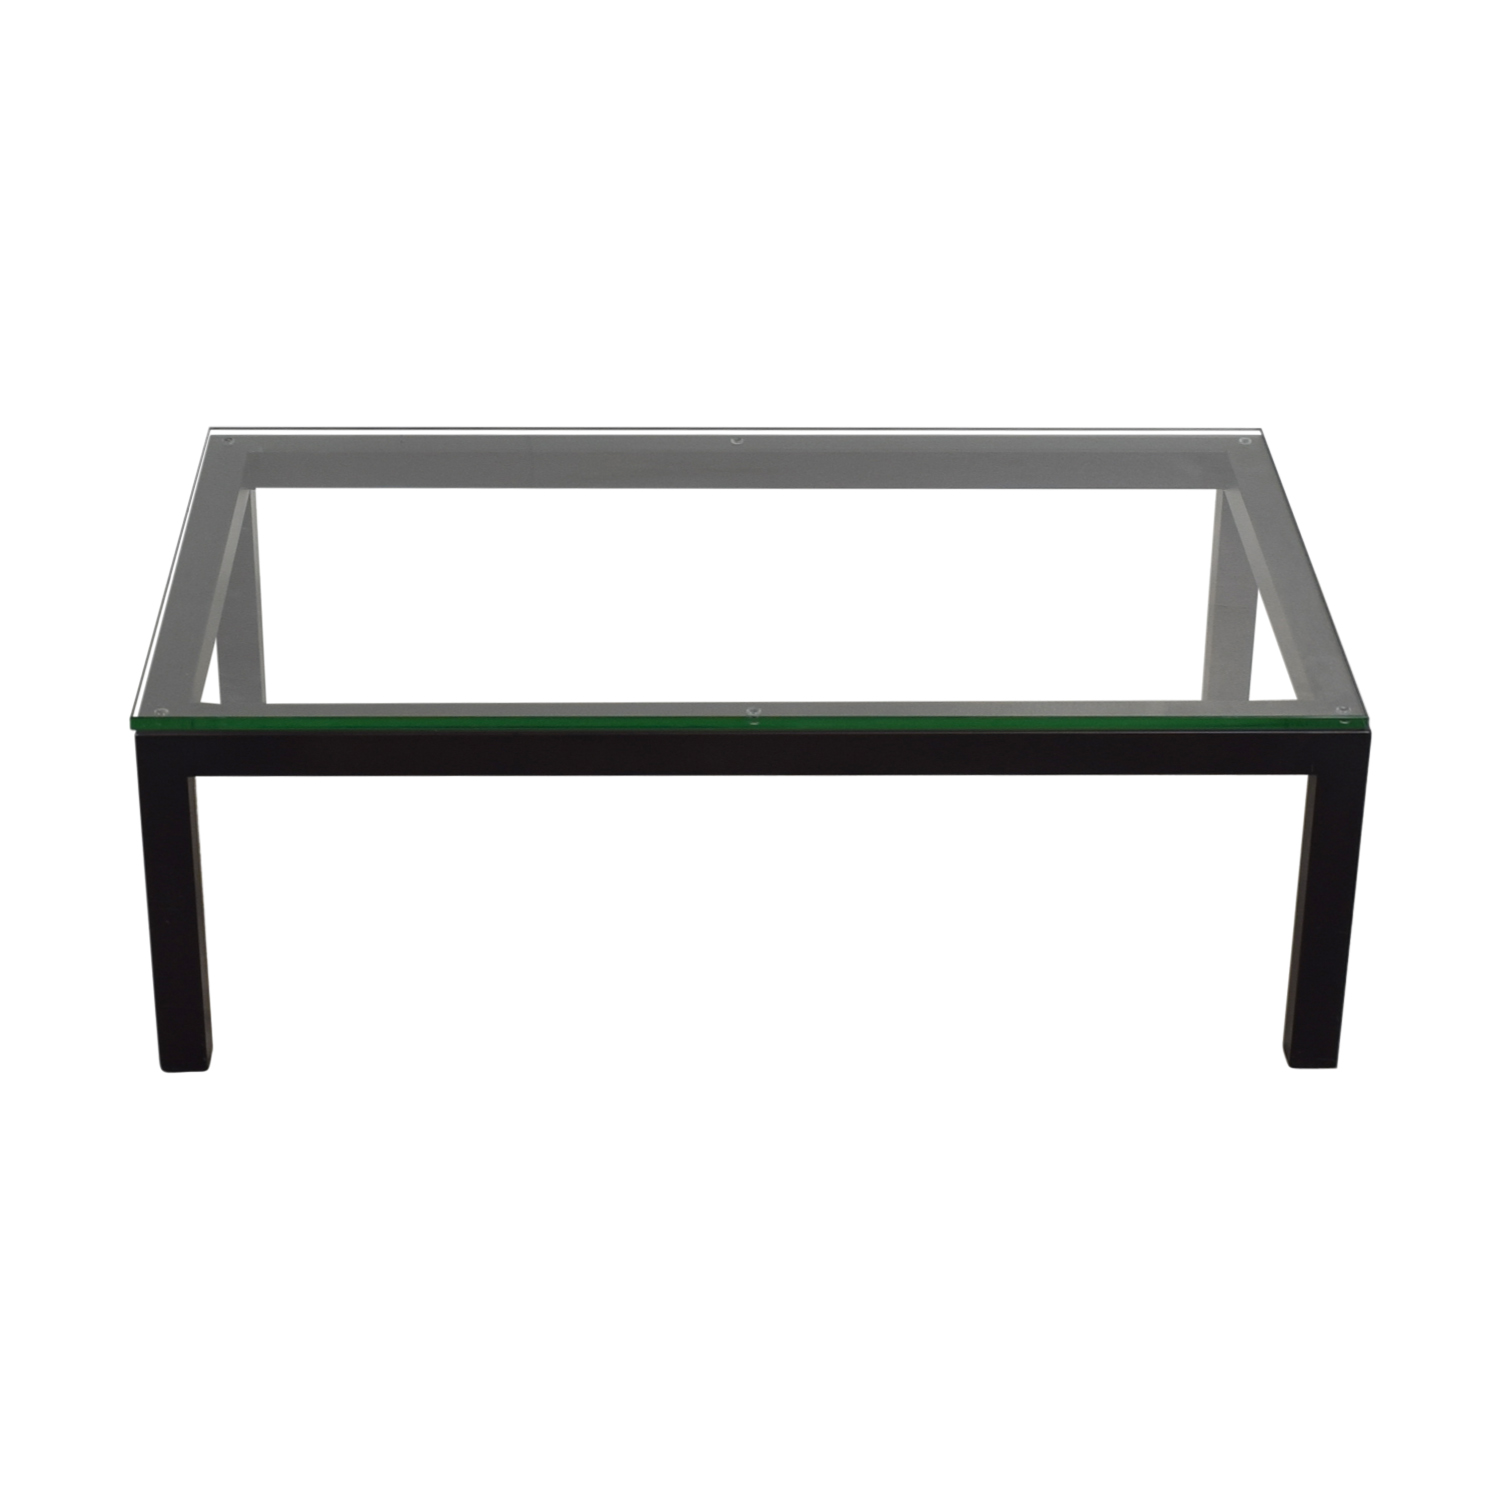 buy Crate & Barrel Parsons Glass Top Coffee Table Crate & Barrel Sofas